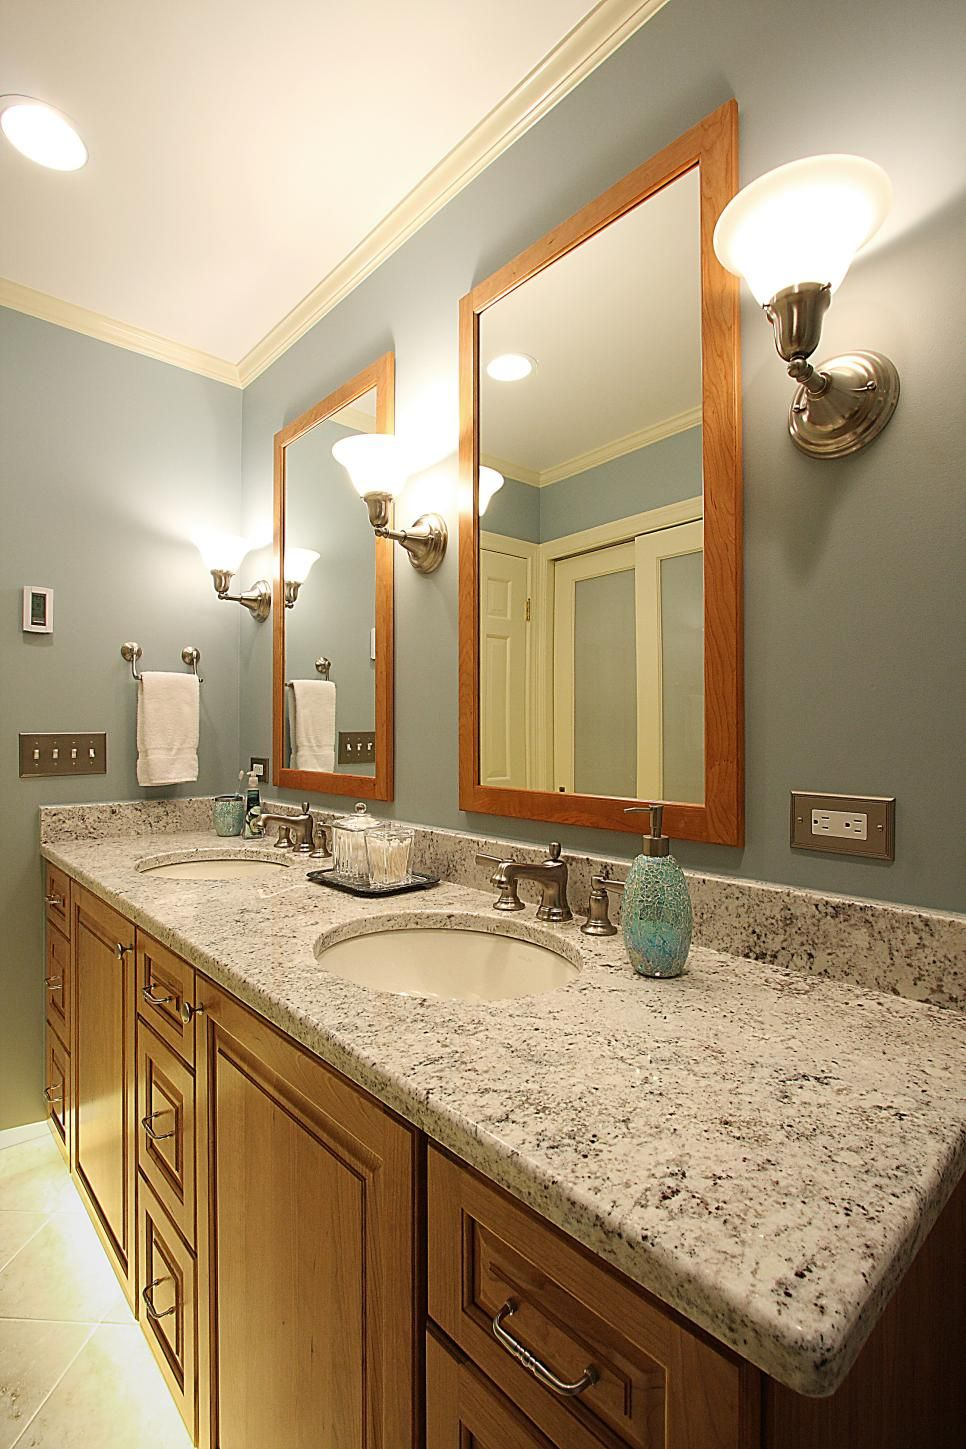 This Blue Gray Bathroom Features A Double Sink Vanity With Natural